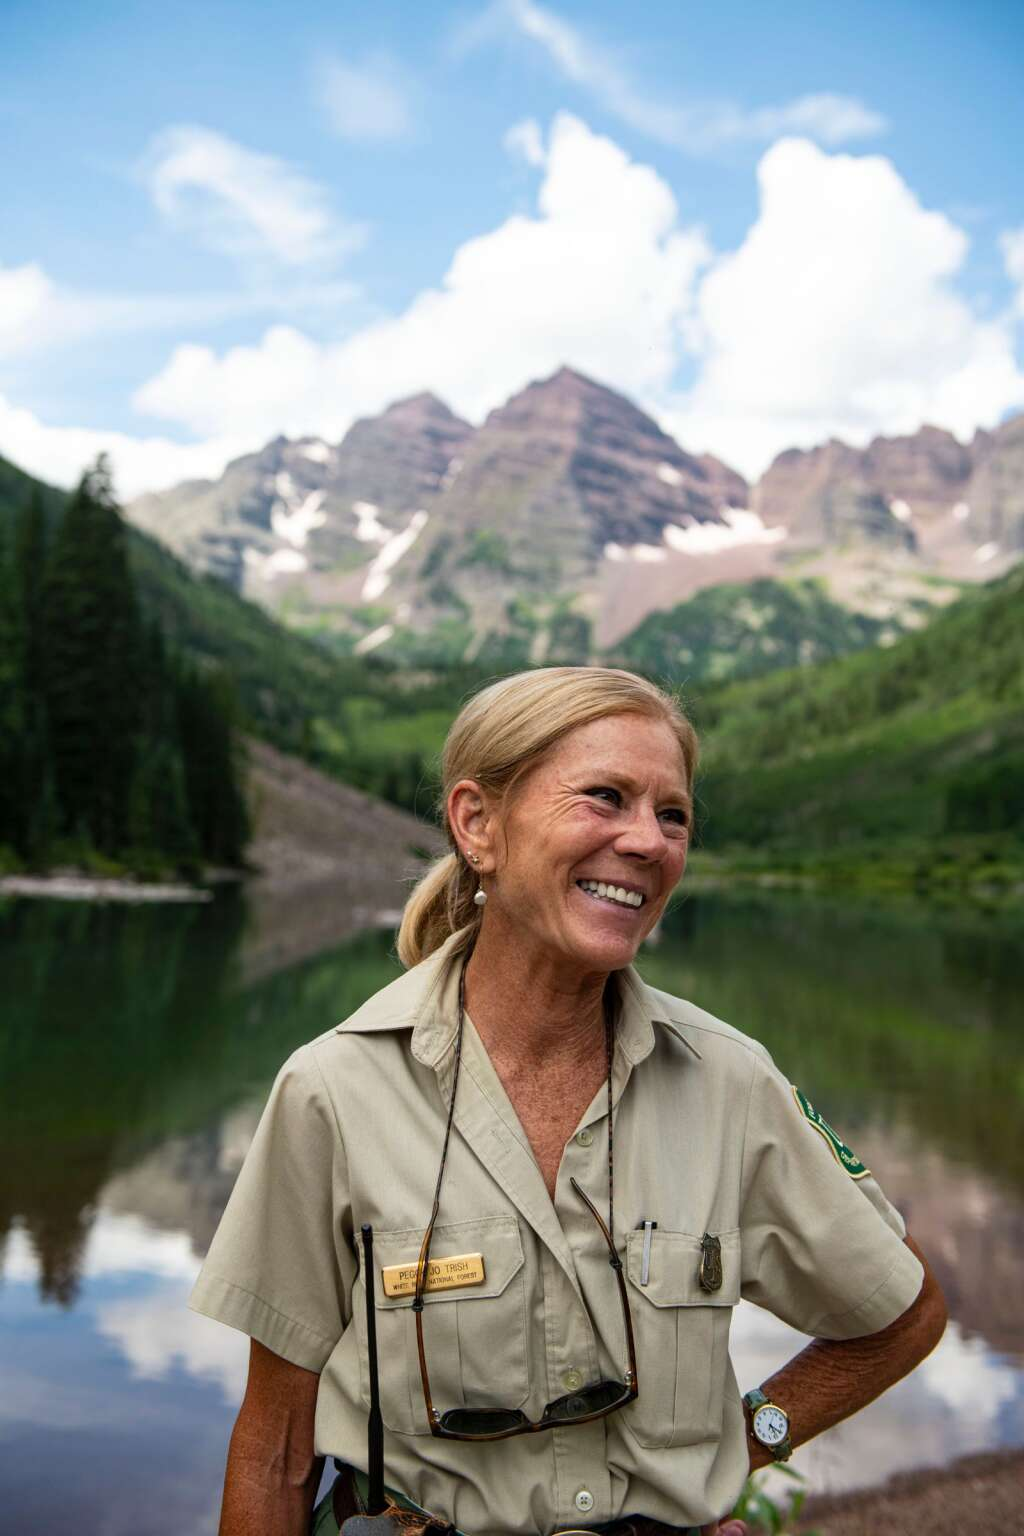 Peggy Jo Trish takes time to chat while on duty at Maroon Lake on Thursday, July 22, 2021. (Kelsey Brunner/The Aspen Times)